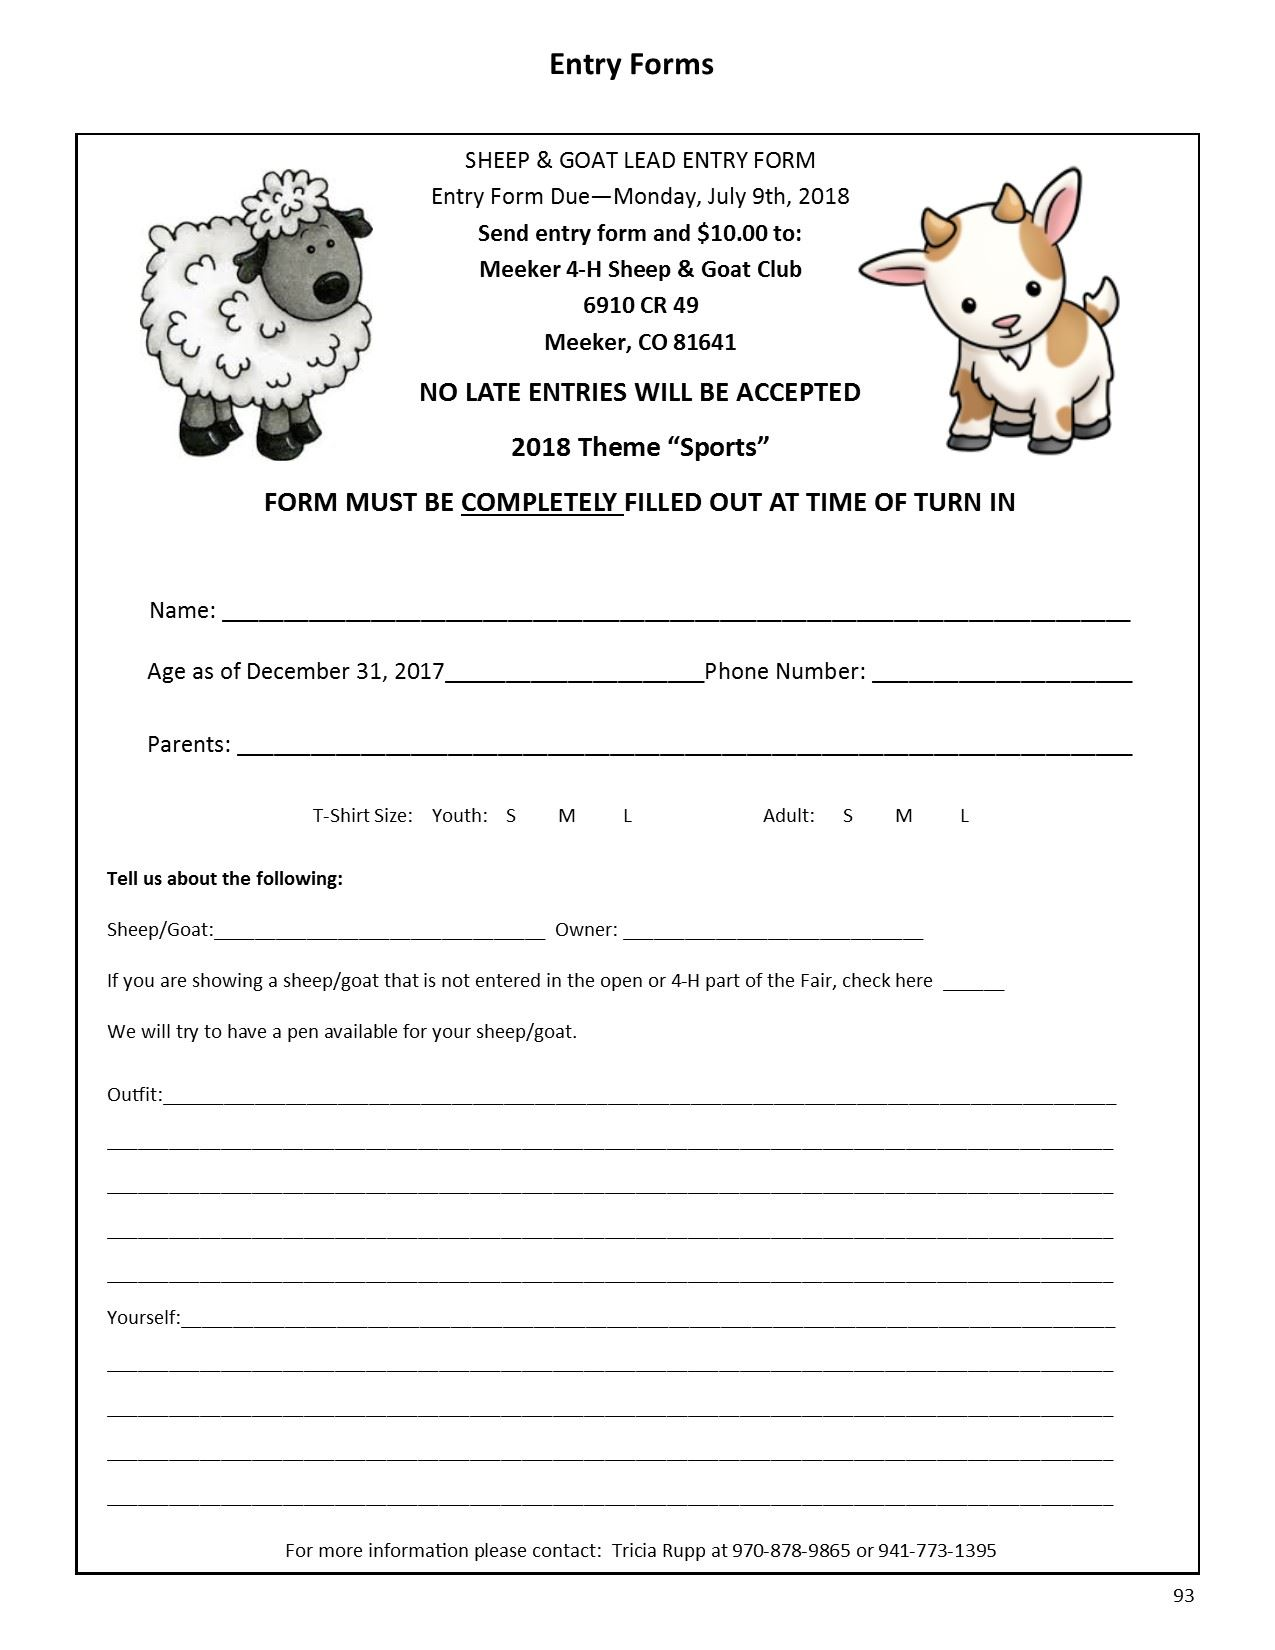 Sheep-Goat Lead Entry Form